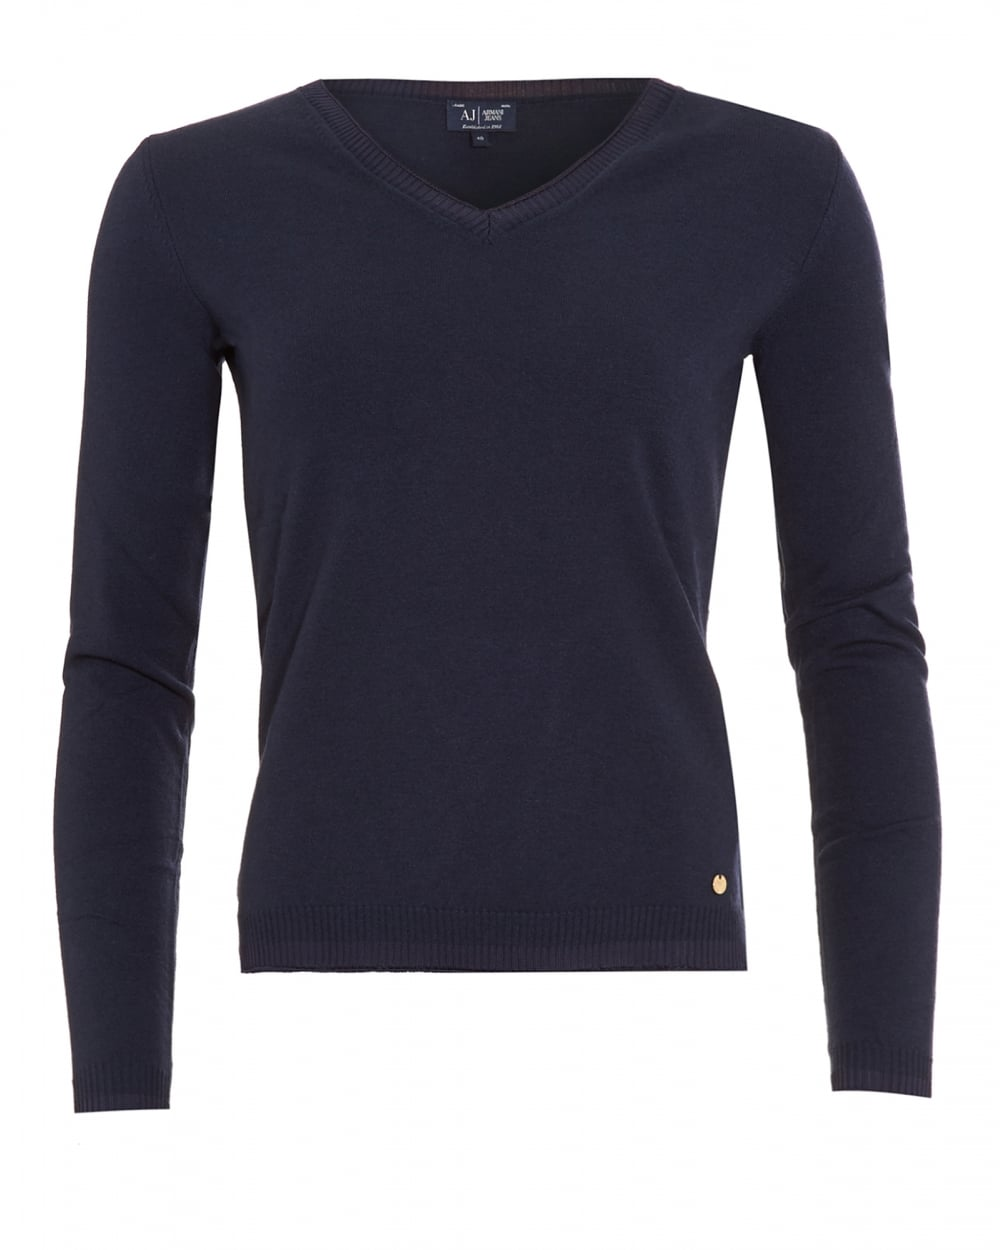 Womens Ladies Navy Blue Semi Fitted Ribbed Button V Neck Wool Acrylic Jumper L | Add to watch list Find out more about the Top-Rated Seller program - opens in a .